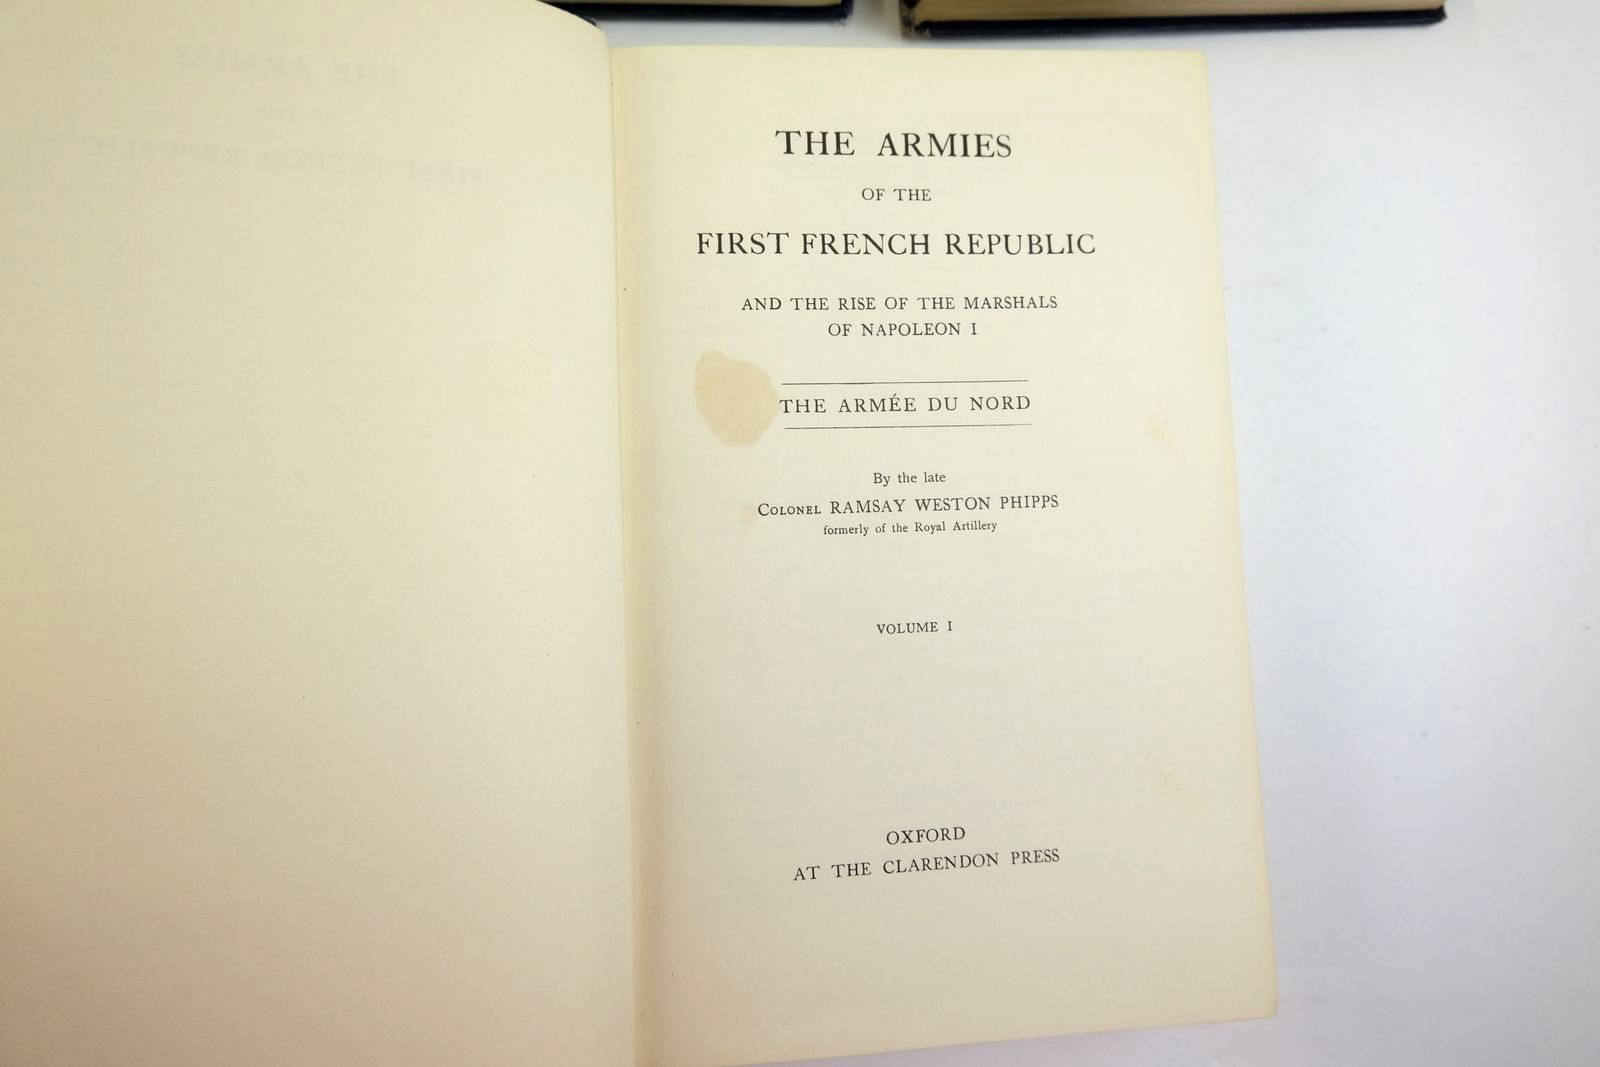 Photo of THE ARMIES OF THE FIRST FRENCH REPUBLIC AND THE RISE OF THE MARSHALS OF NAPOLEON I (5 VOLUMES) written by Phipps, Ramsay Weston published by Oxford at the Clarendon Press (STOCK CODE: 2134137)  for sale by Stella & Rose's Books